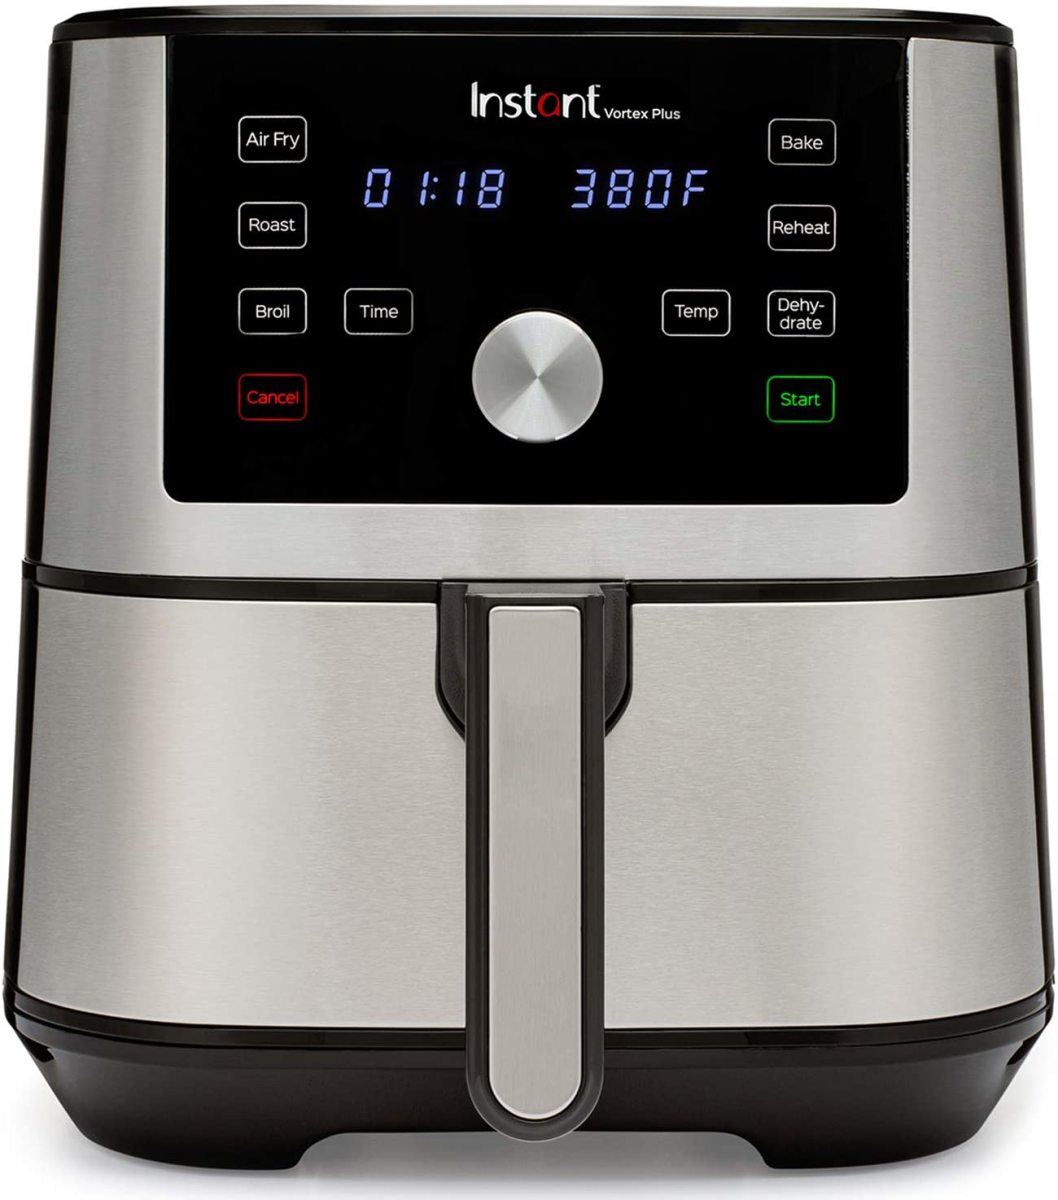 The Instant Vortex Plus 6-in-1 Air Fryer